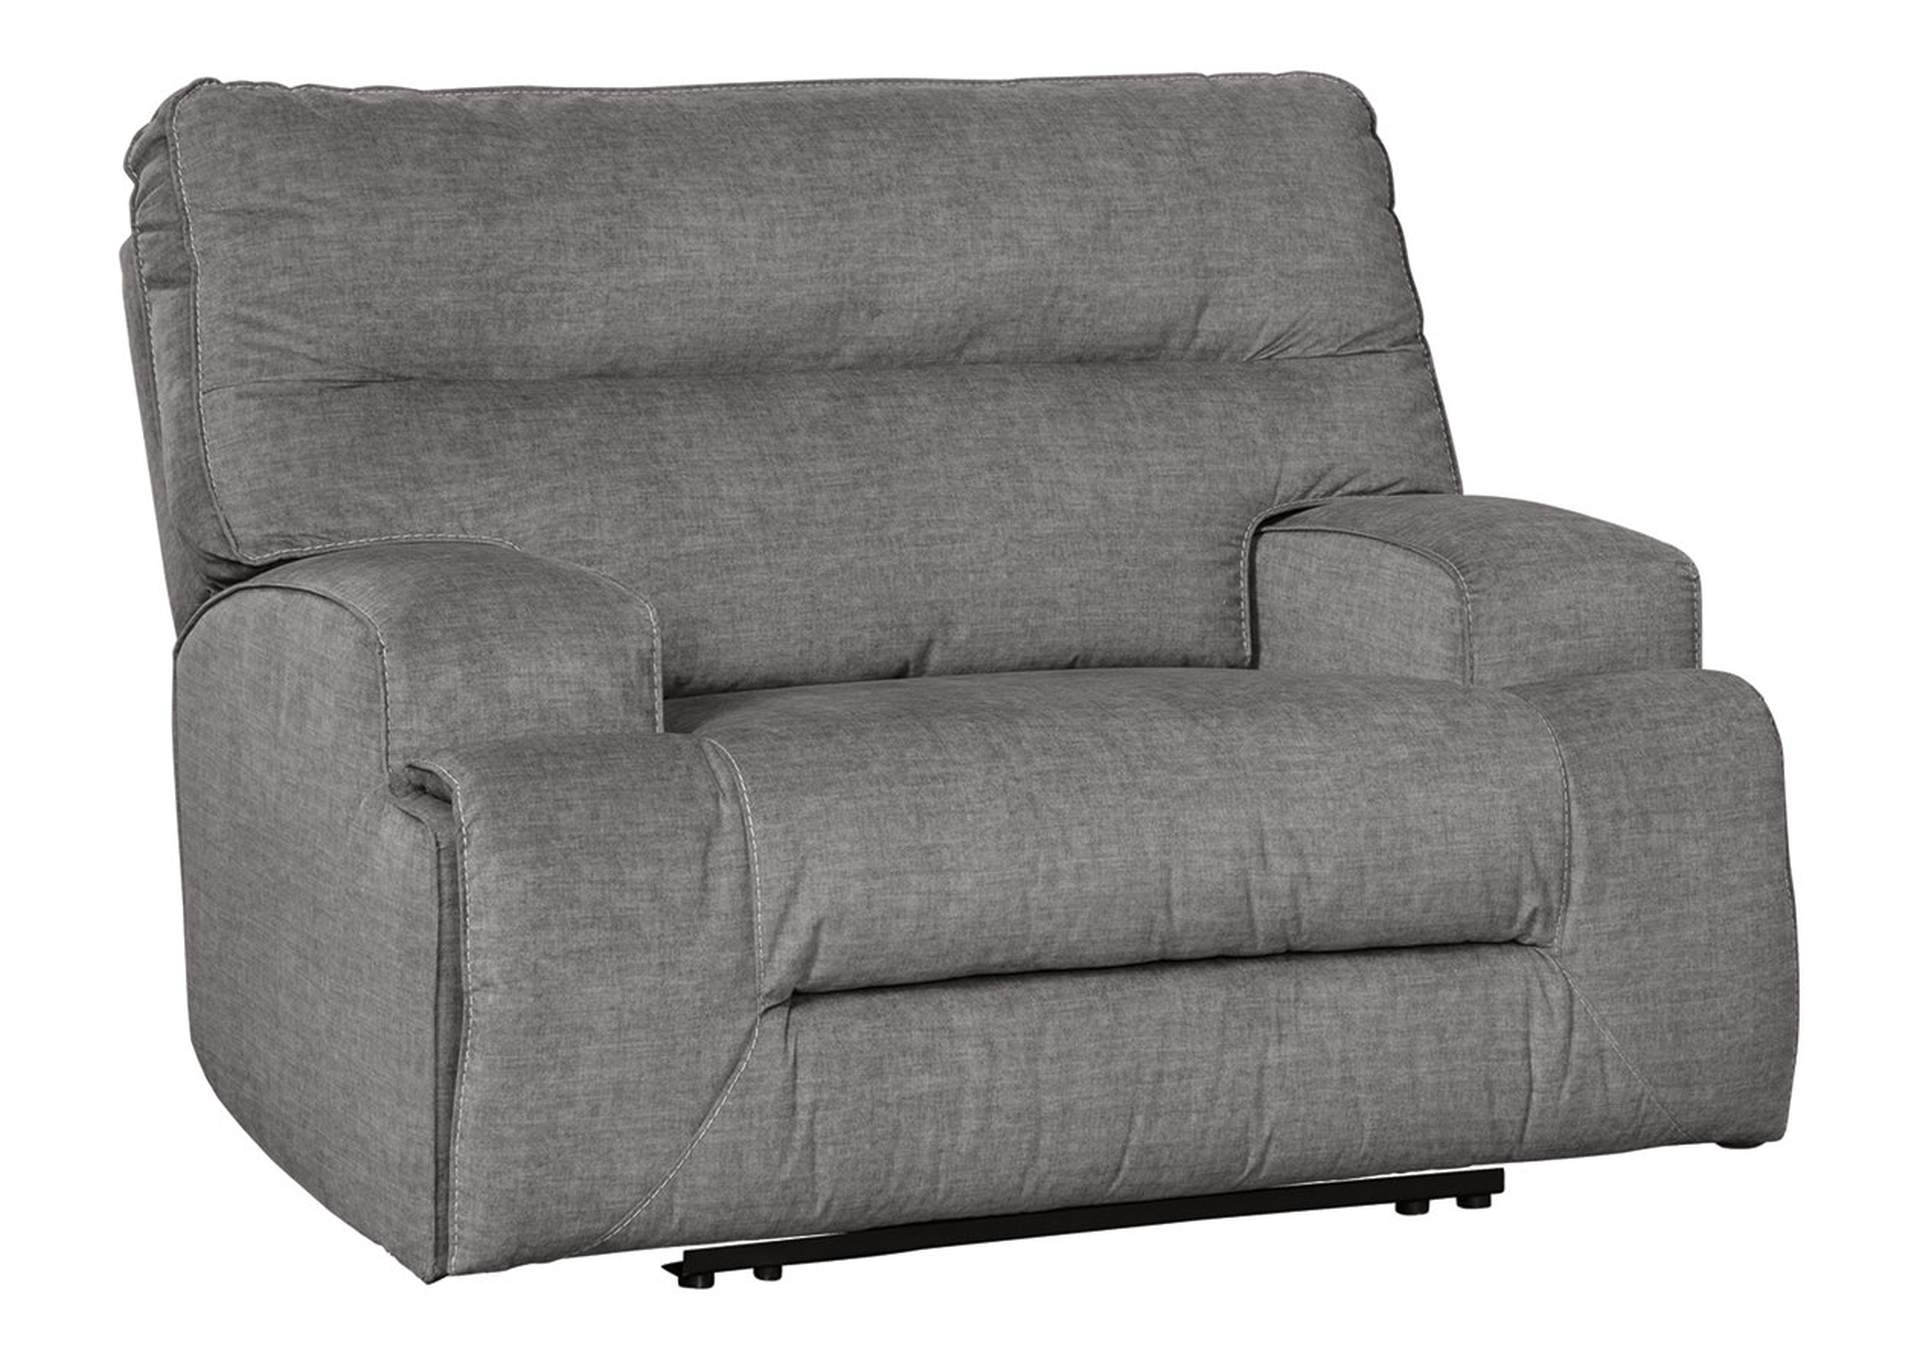 Coombs Charcoal Oversized Power Recliner Best Buy Furniture and